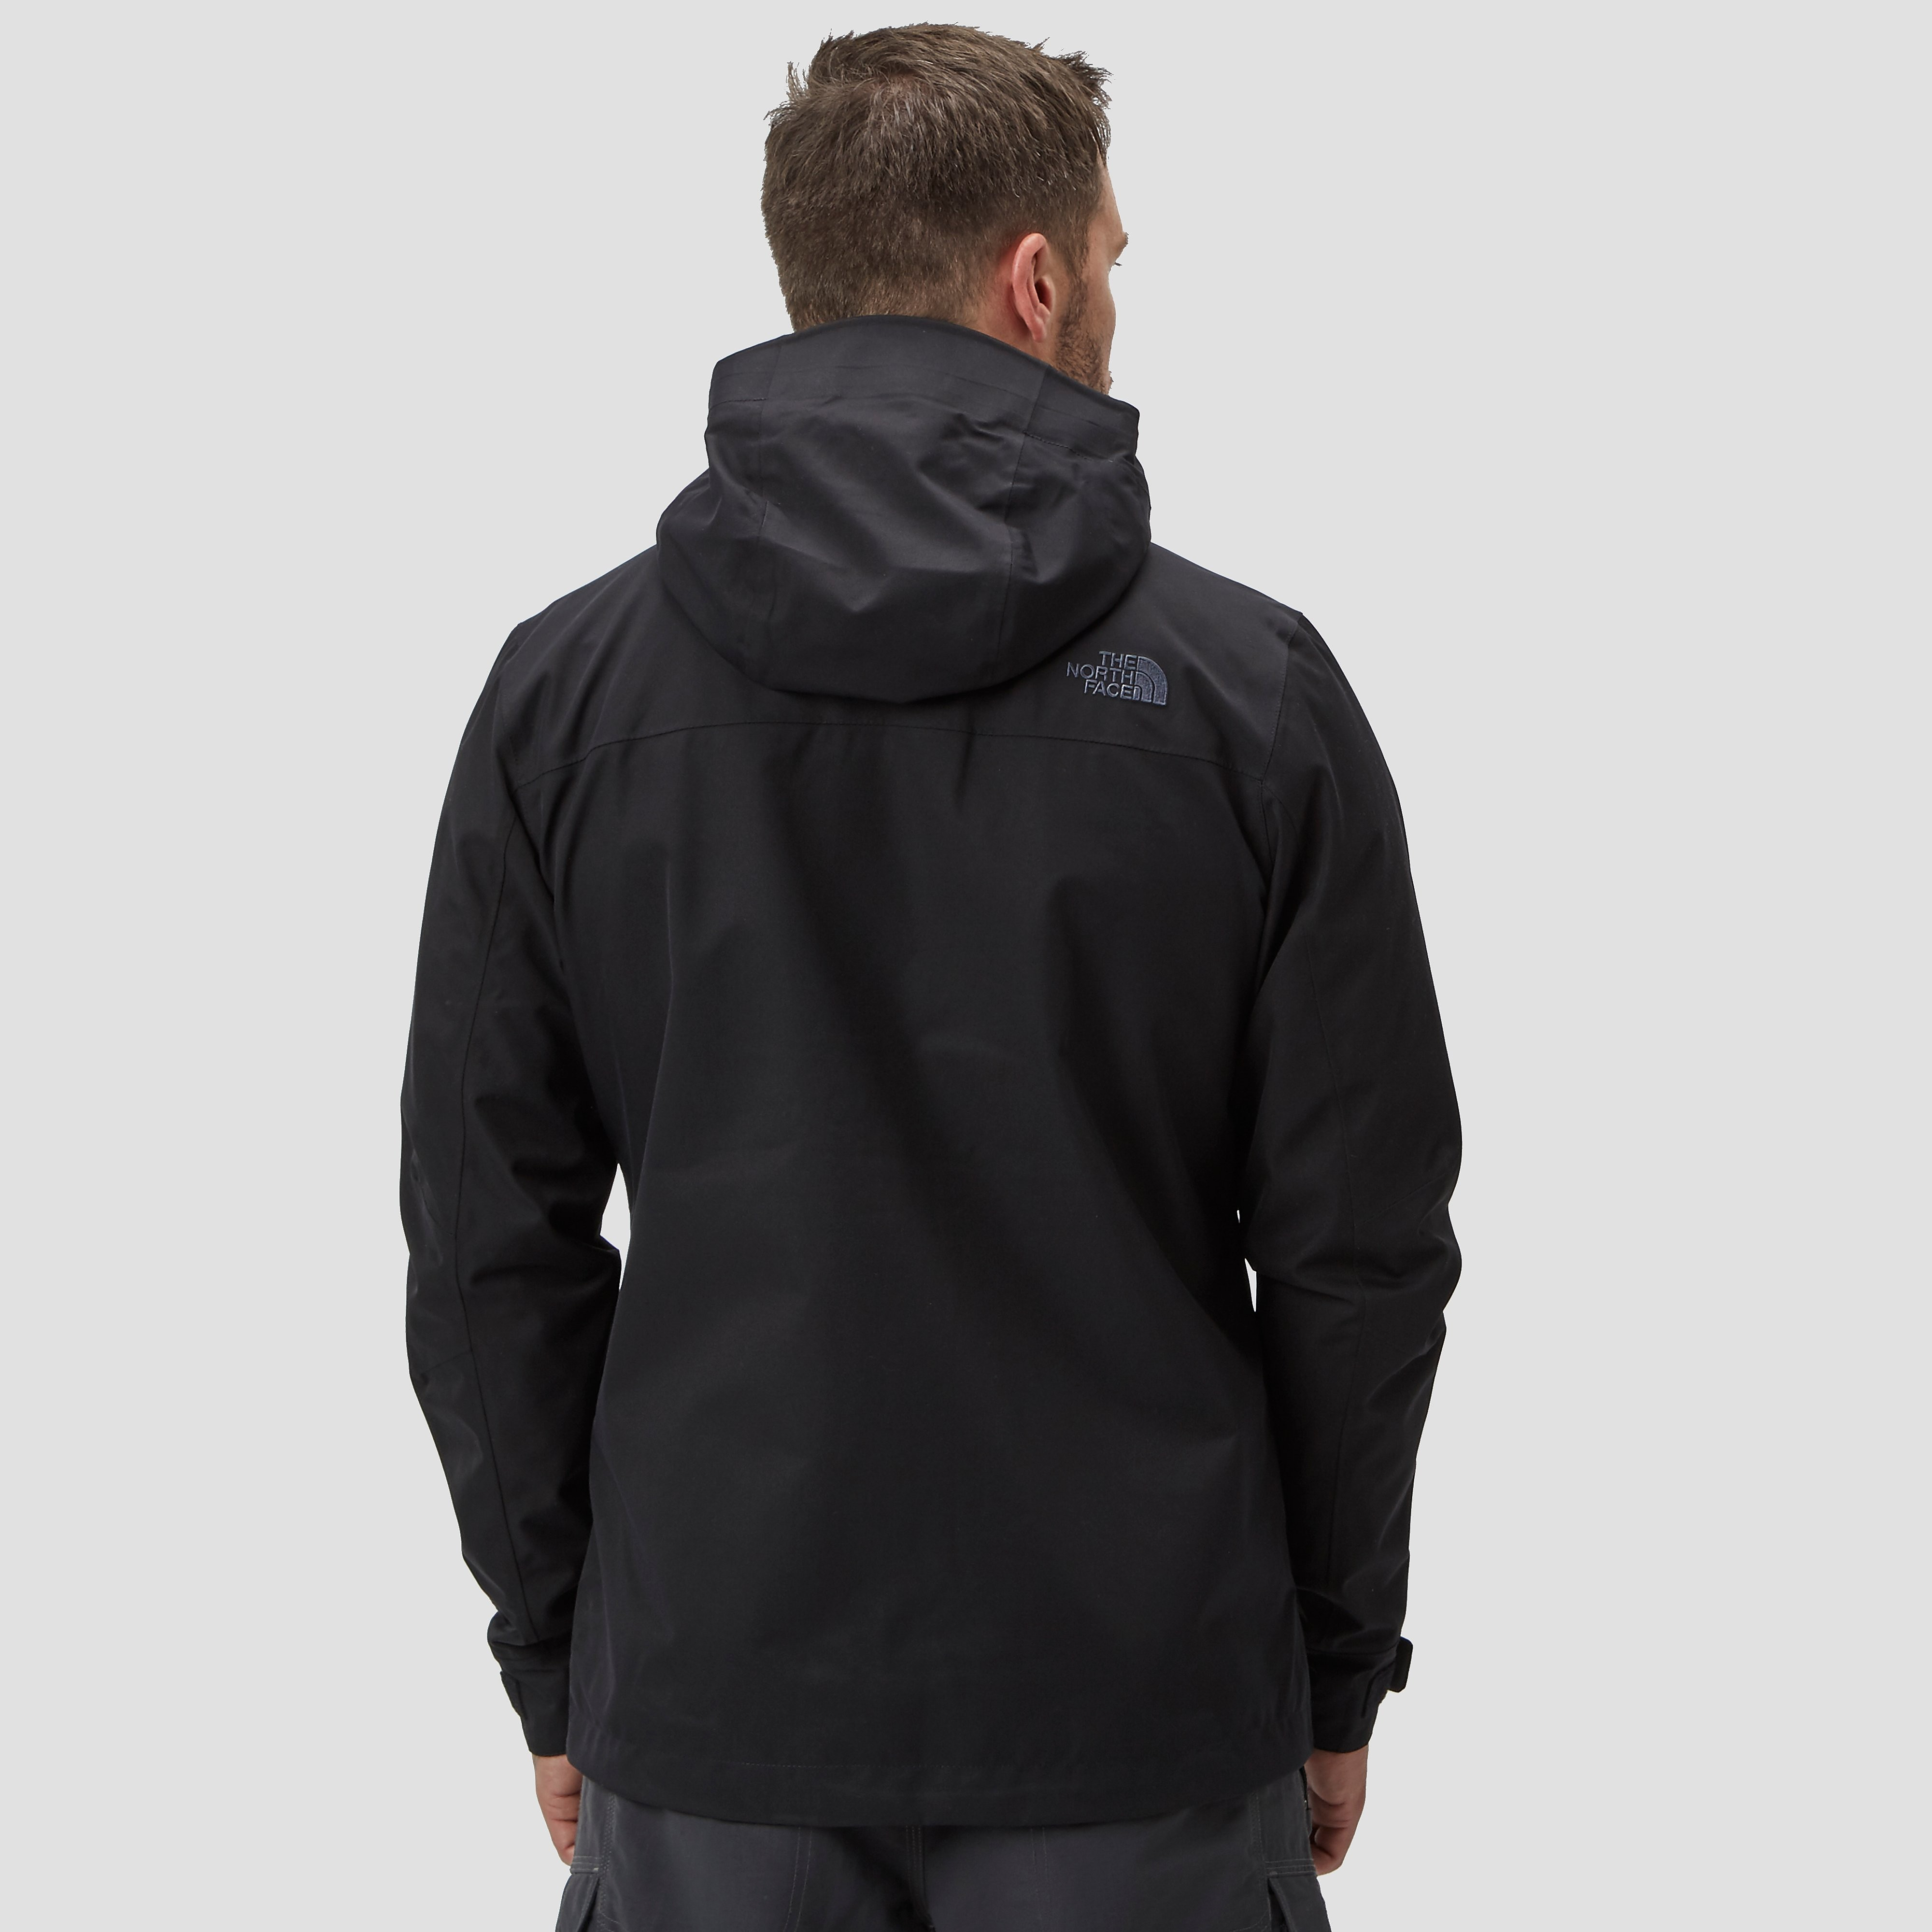 The North Face Men's All Terrain III GORE-TEX Jacket